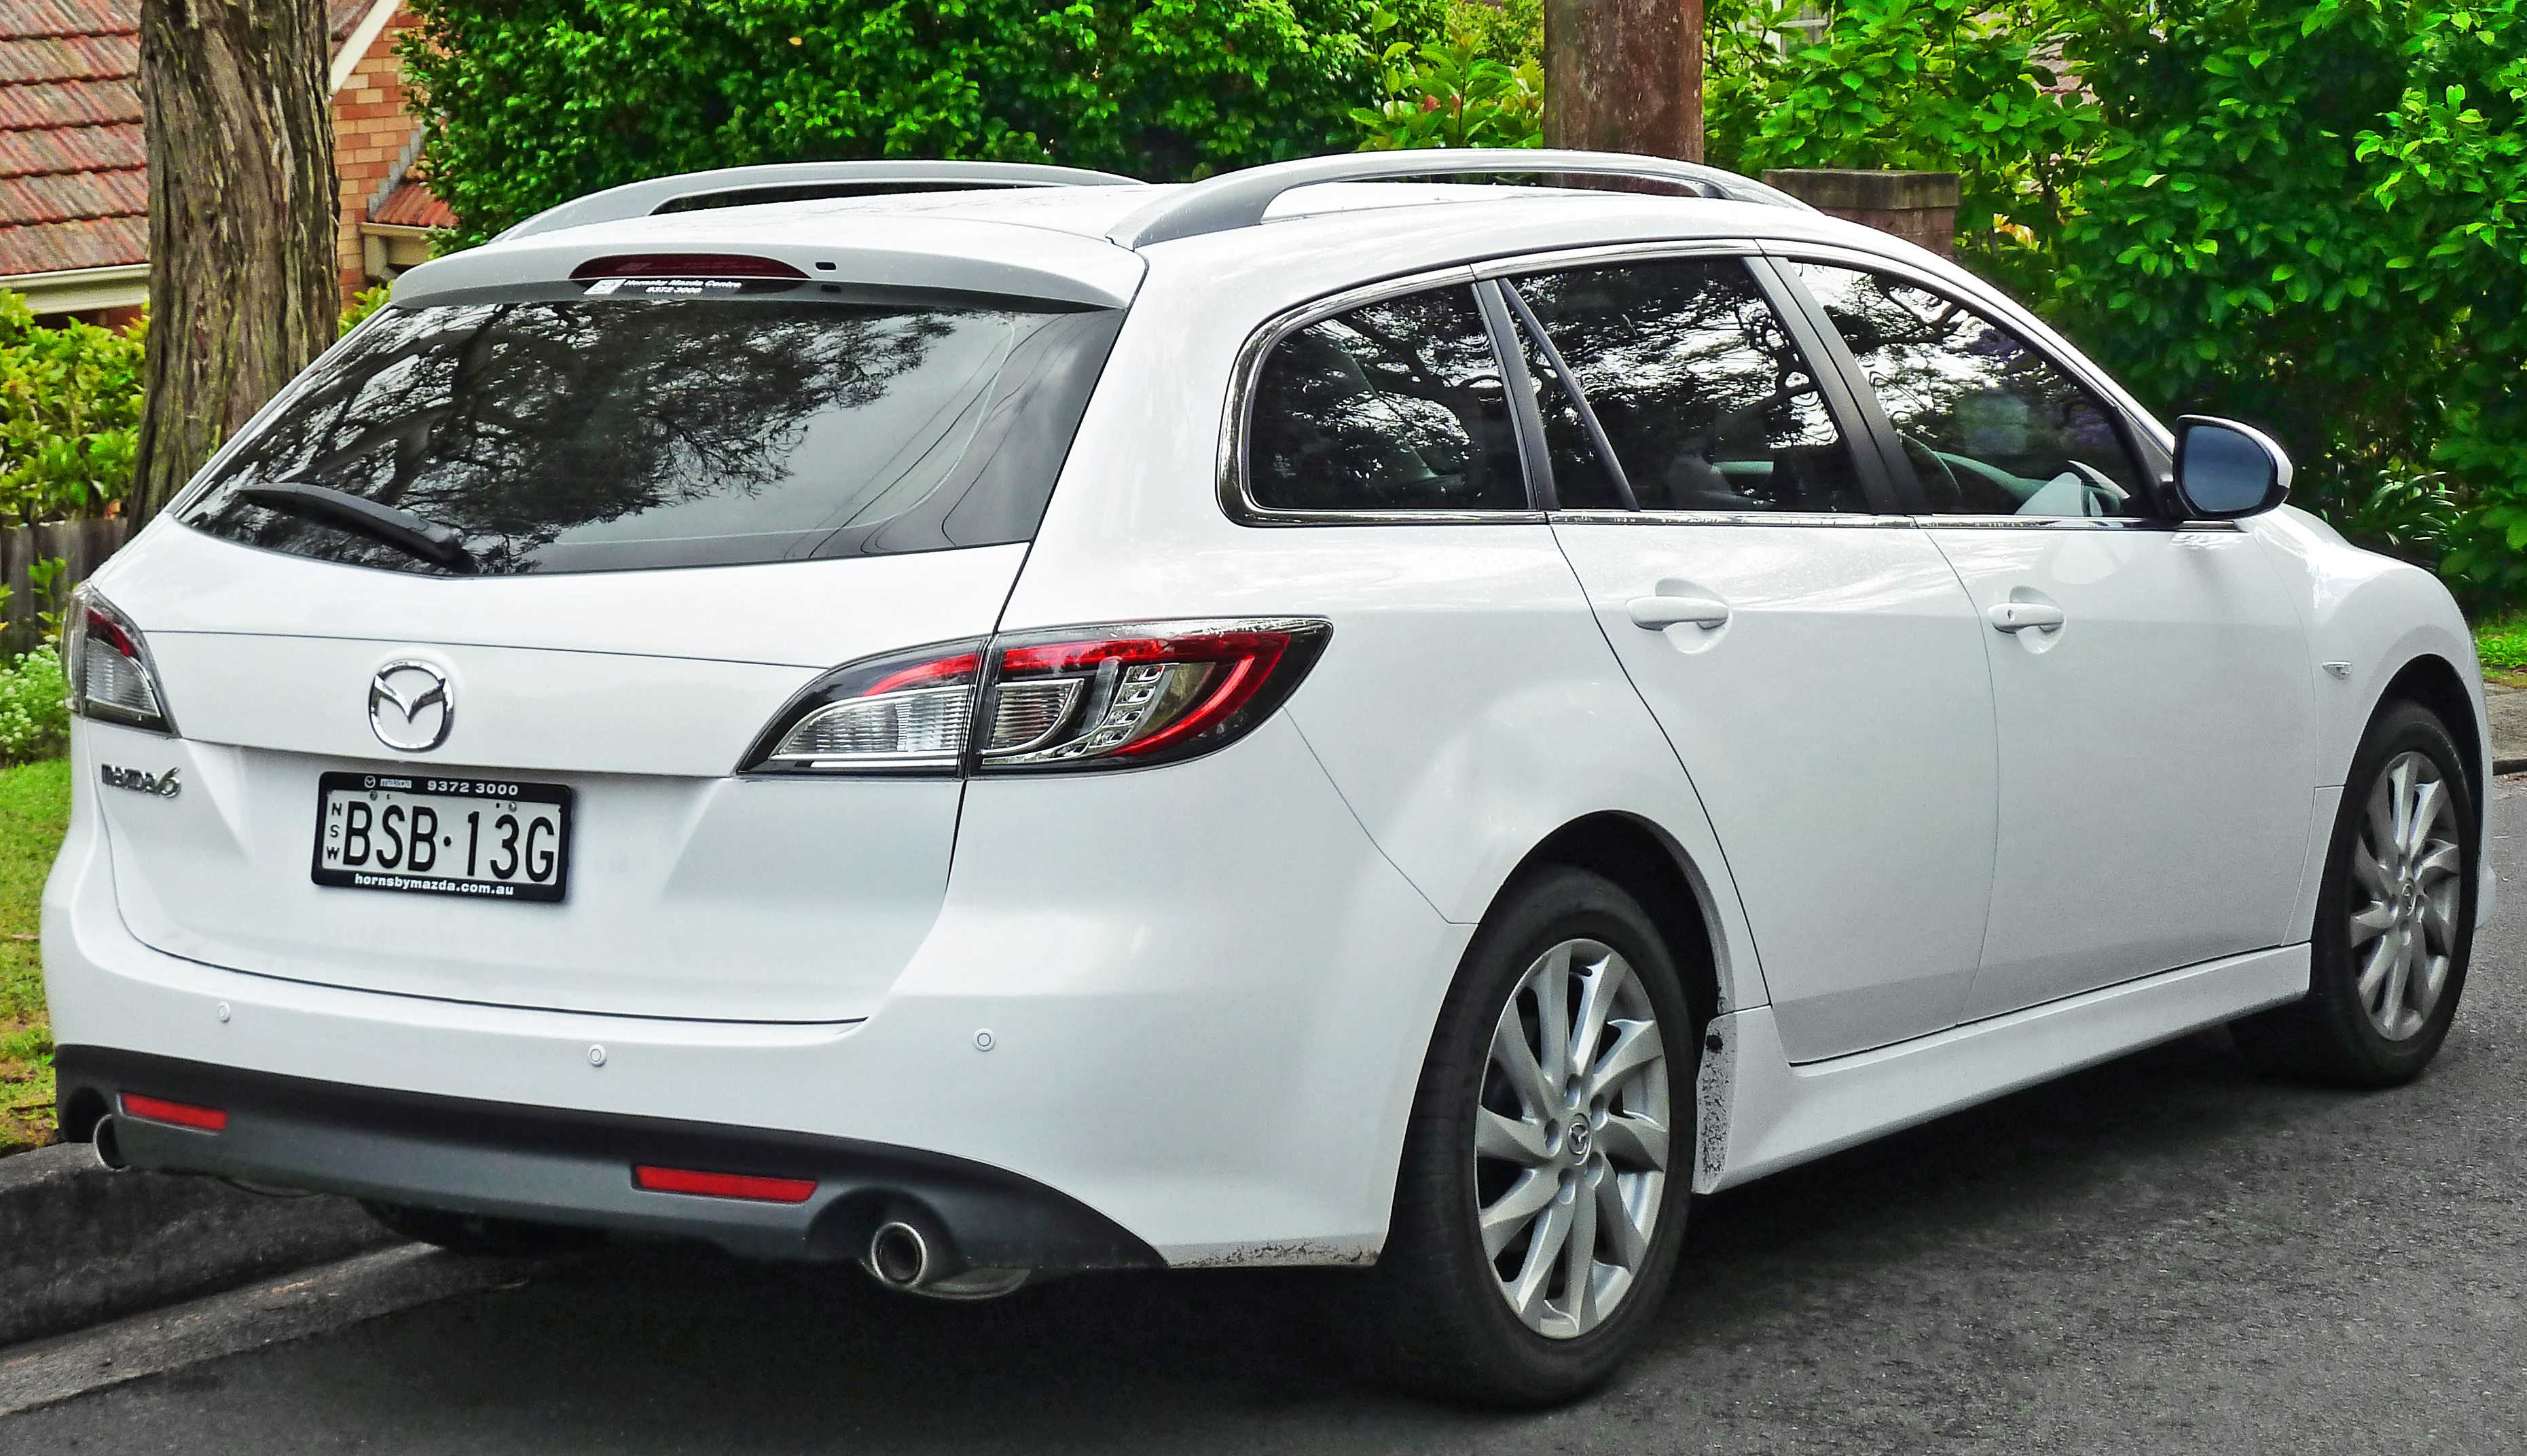 2011 mazda mazda 6 wagon pictures information and specs auto. Black Bedroom Furniture Sets. Home Design Ideas